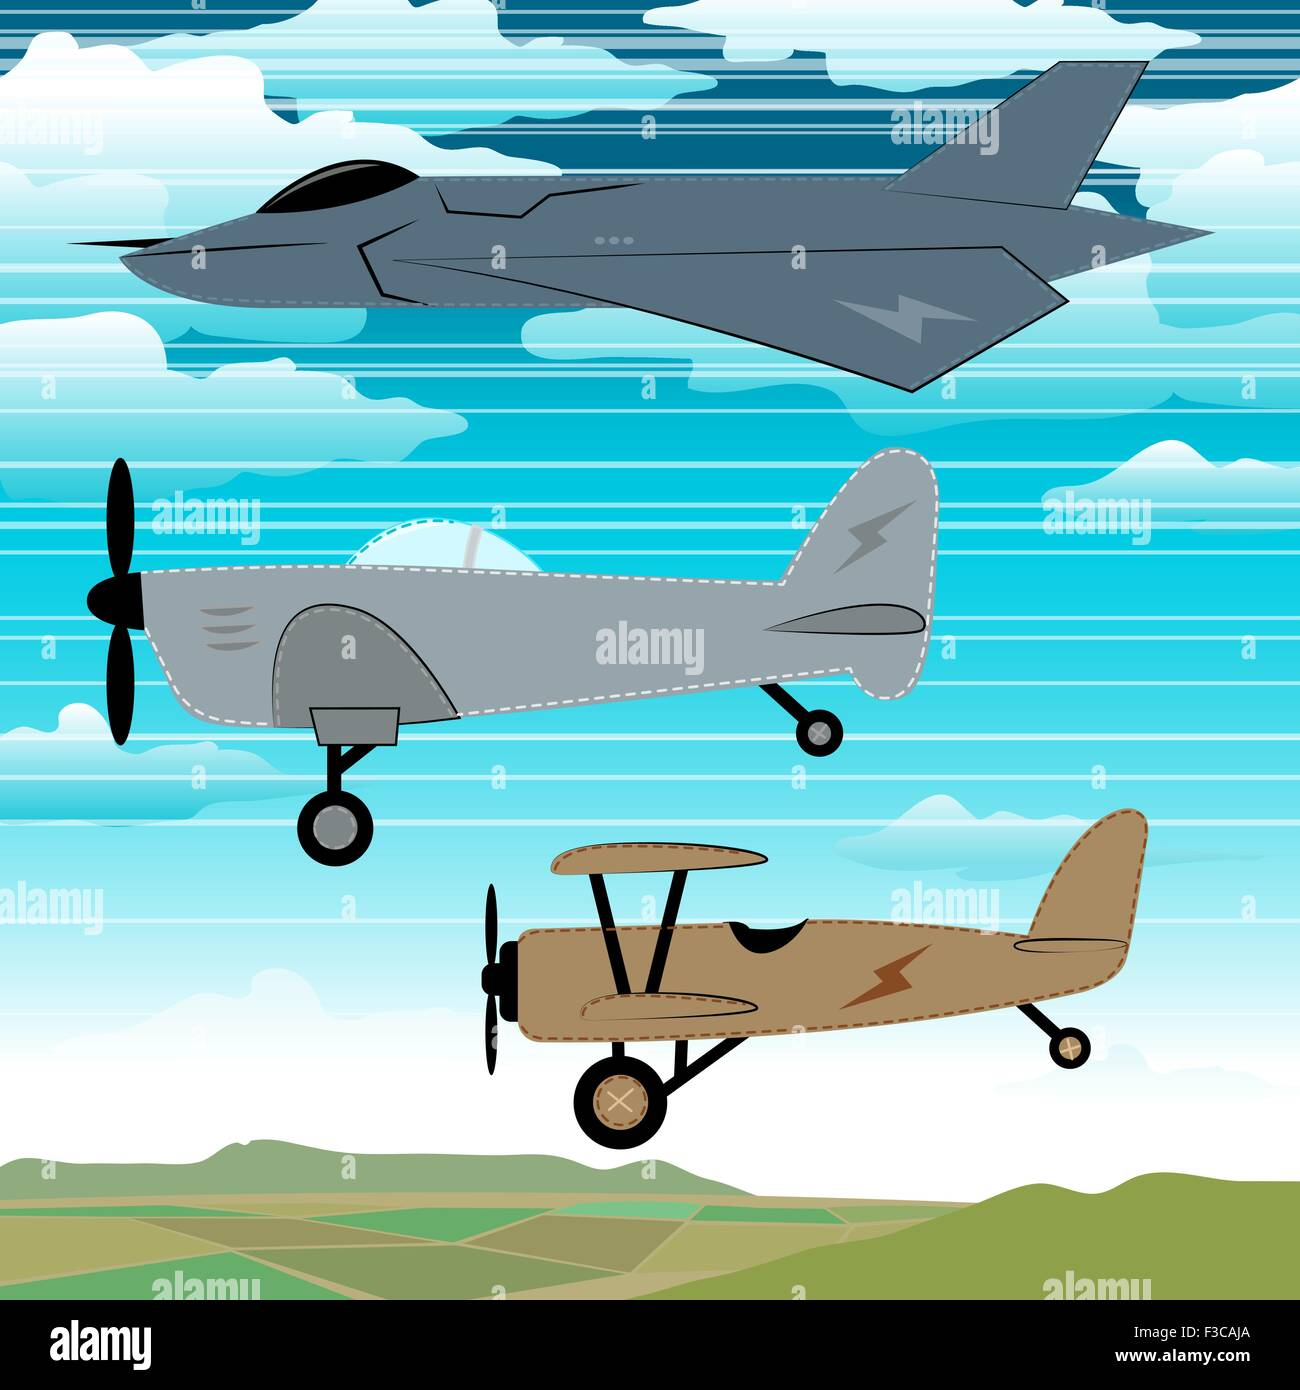 3 military planes flying together with clouds embroidery. - Stock Vector